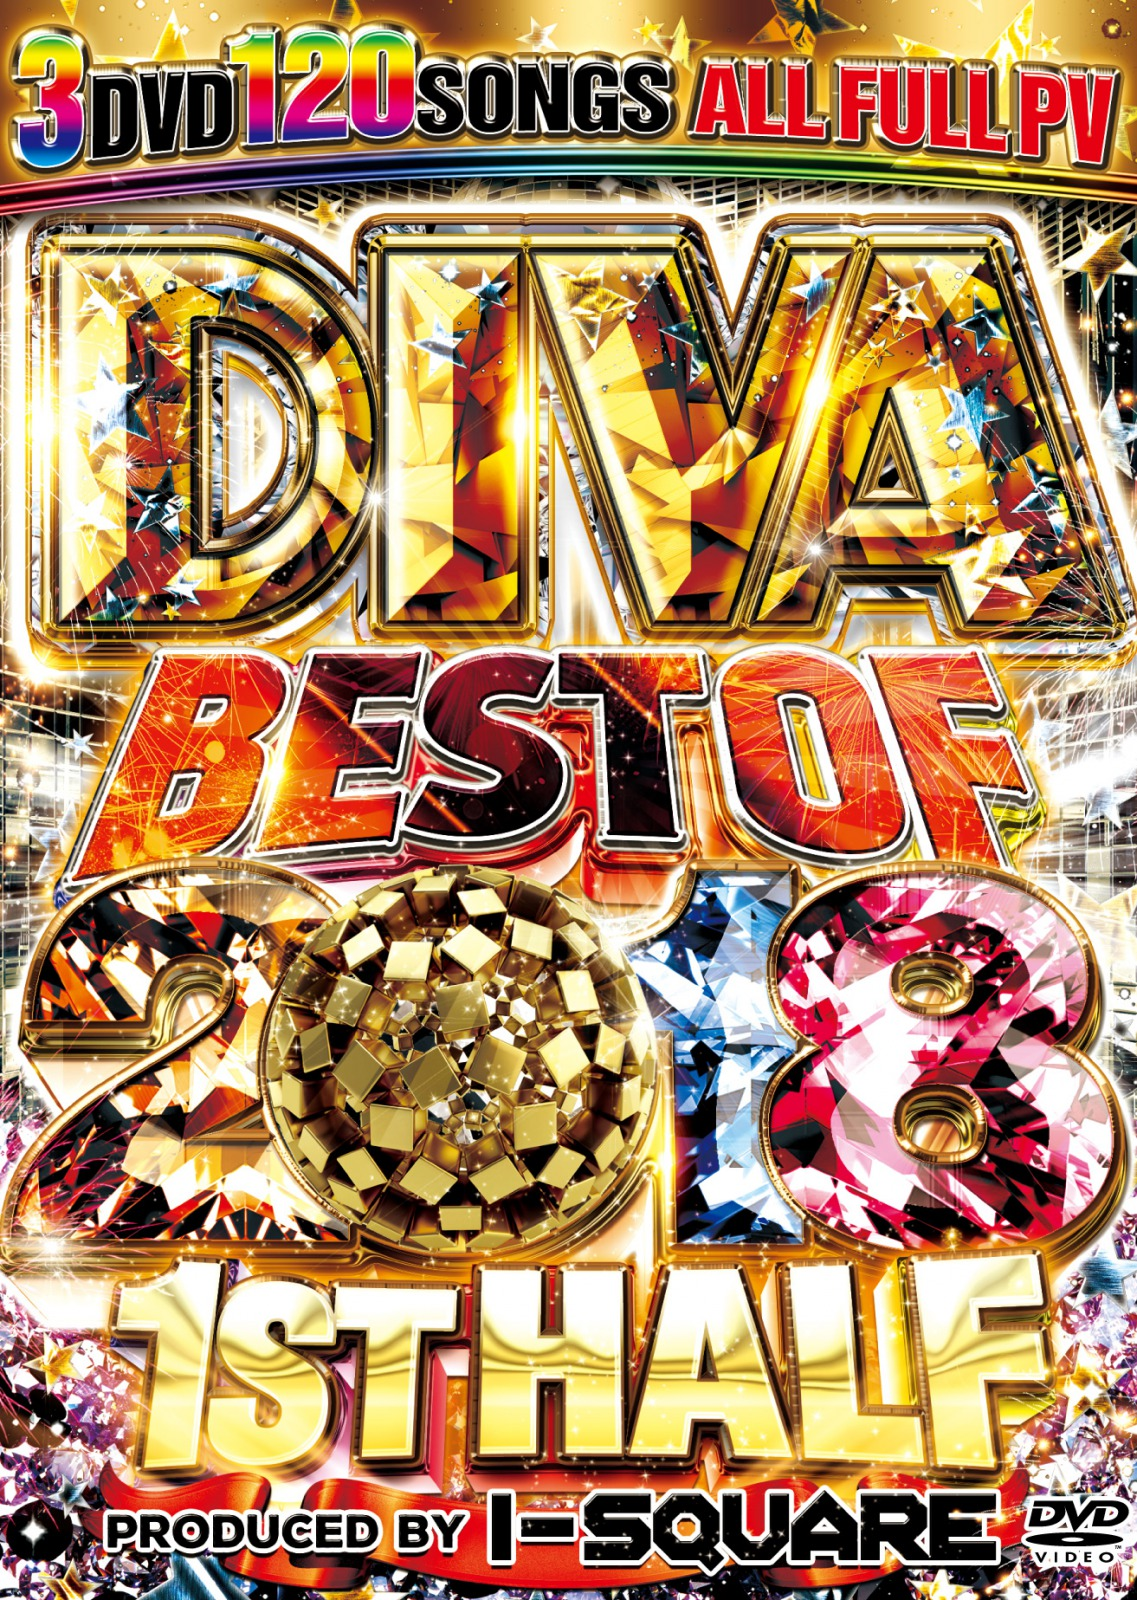 【3枚組】 DIVA BEST OF 2018 1ST HALF/ I-SQUARE 【[国内盤MIX DVD】